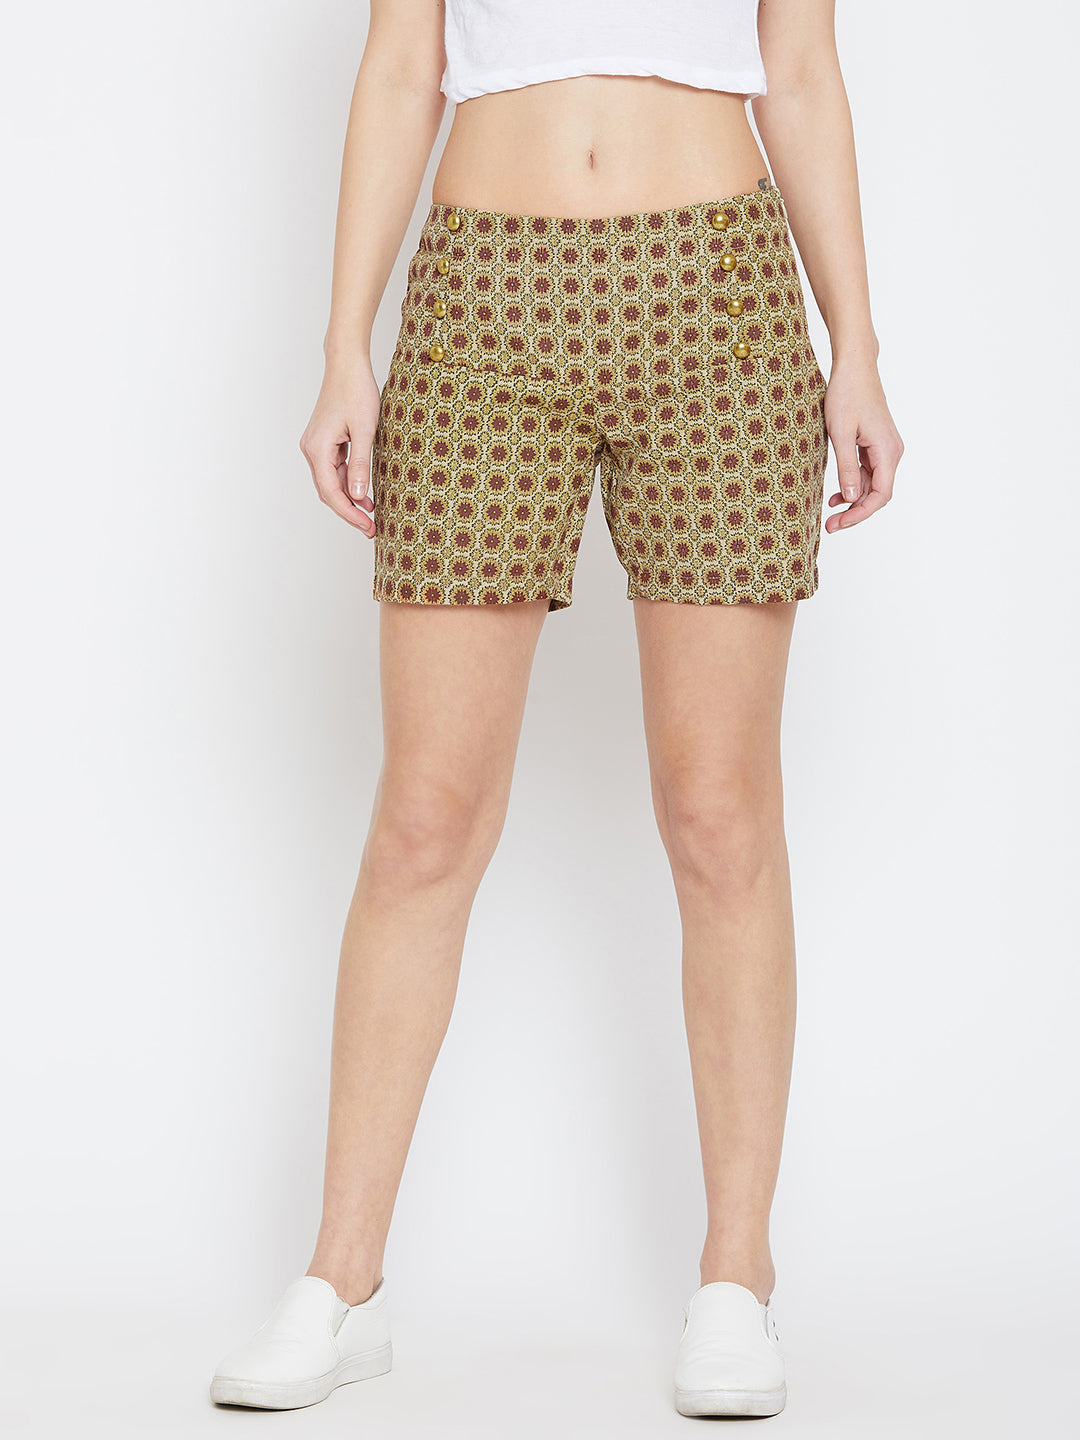 JUMP USA Women Beige & Red Printed Shorts - JUMP USA